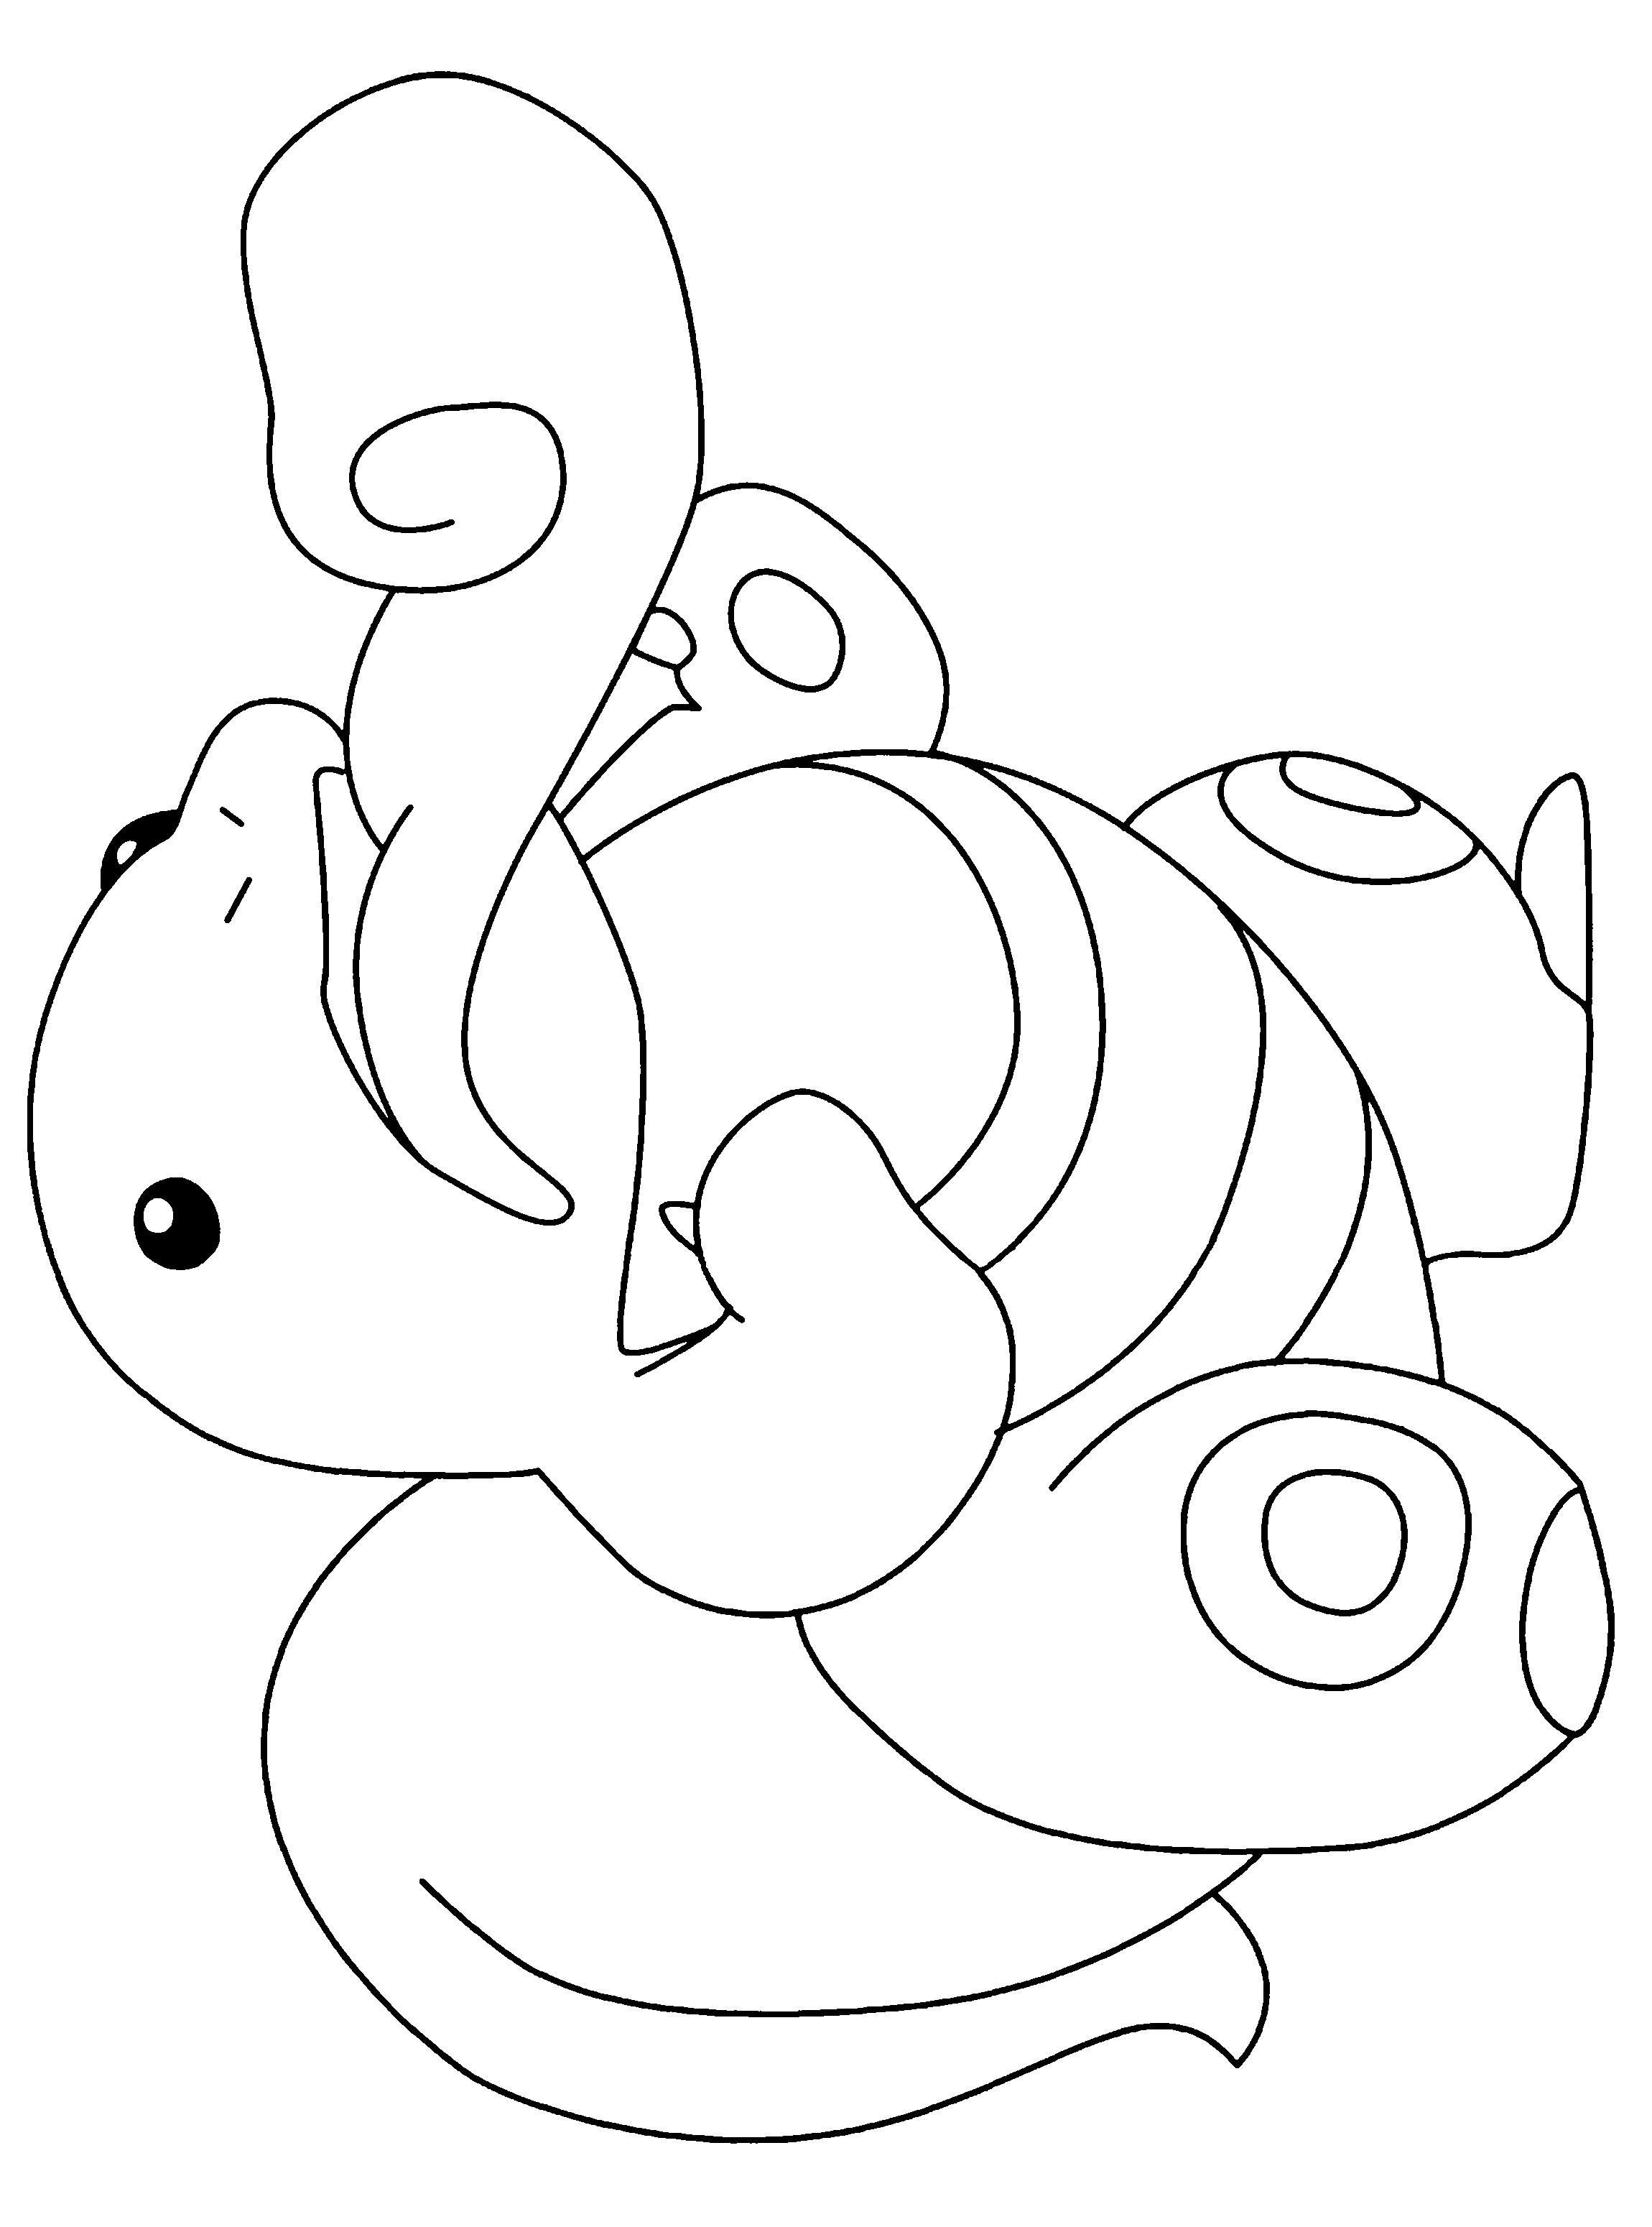 Pokemon kanto coloring pages - Pokemon Coloring Pages